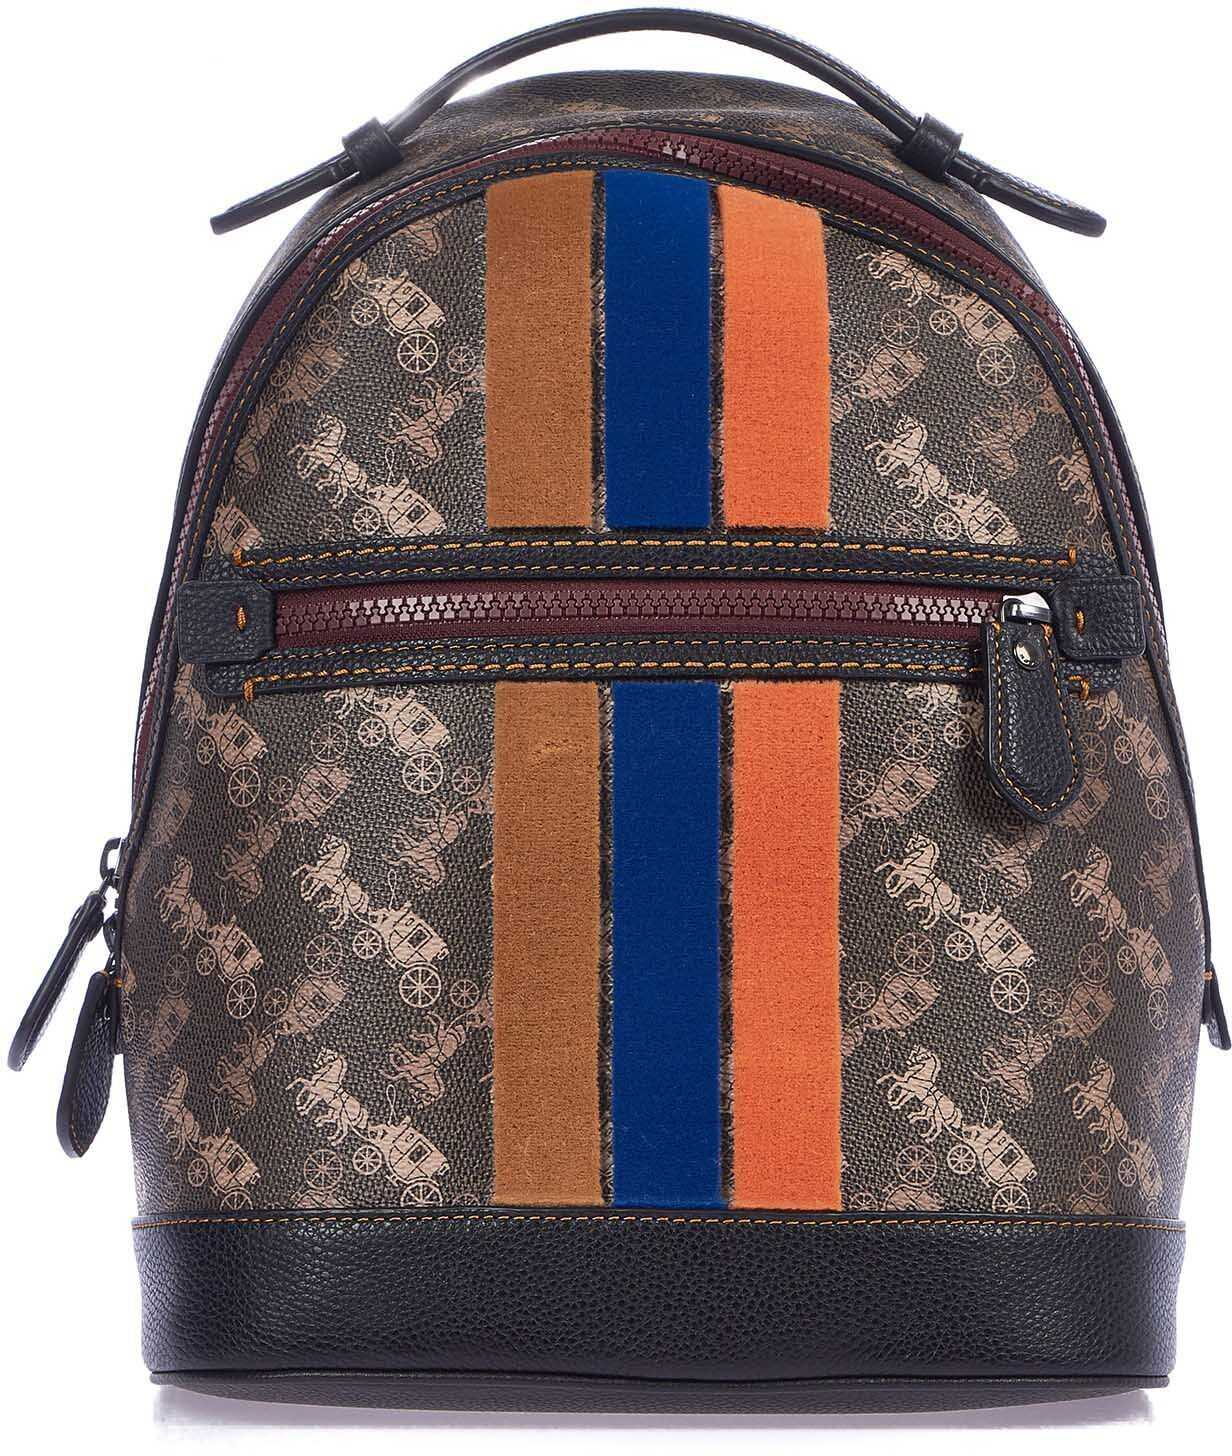 COACH Small backpack with velvet stripes Brown